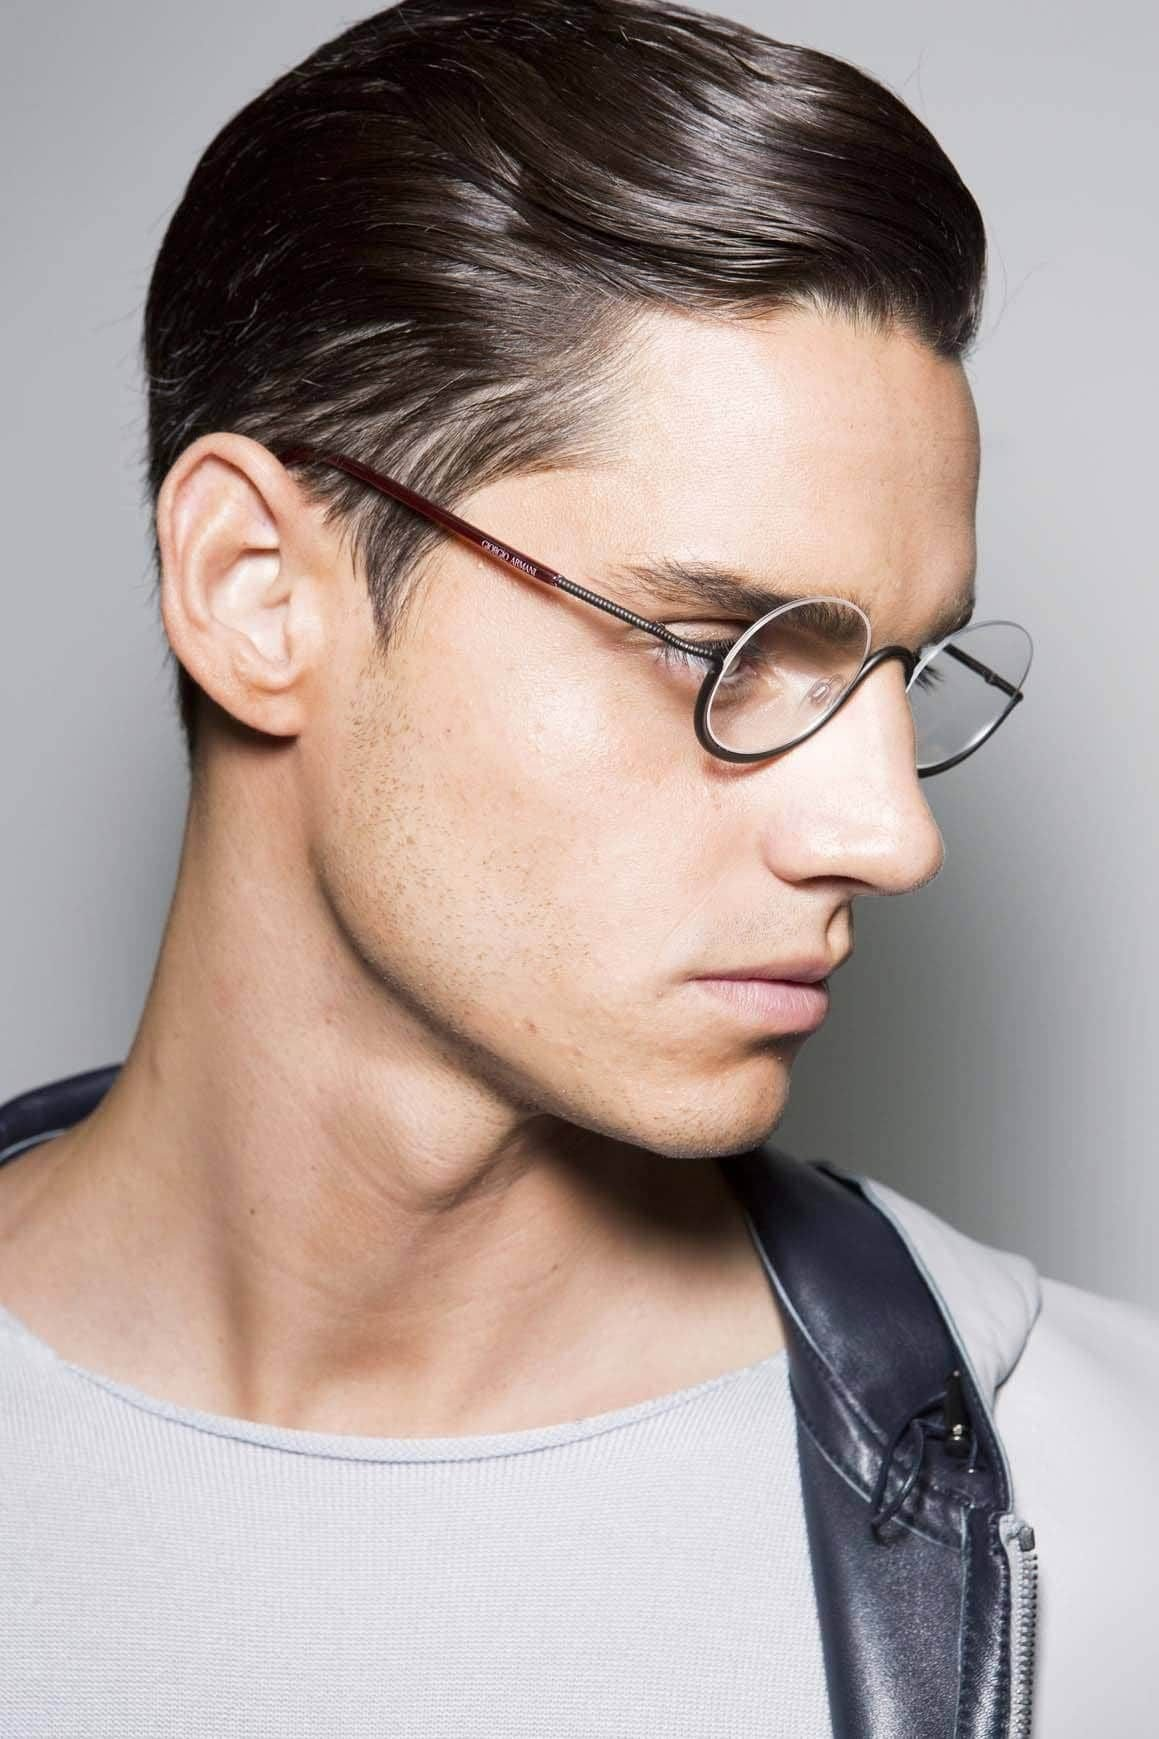 New How To Use Men S Hair Gel To Create Awesome Hairstyles Ideas With Pictures